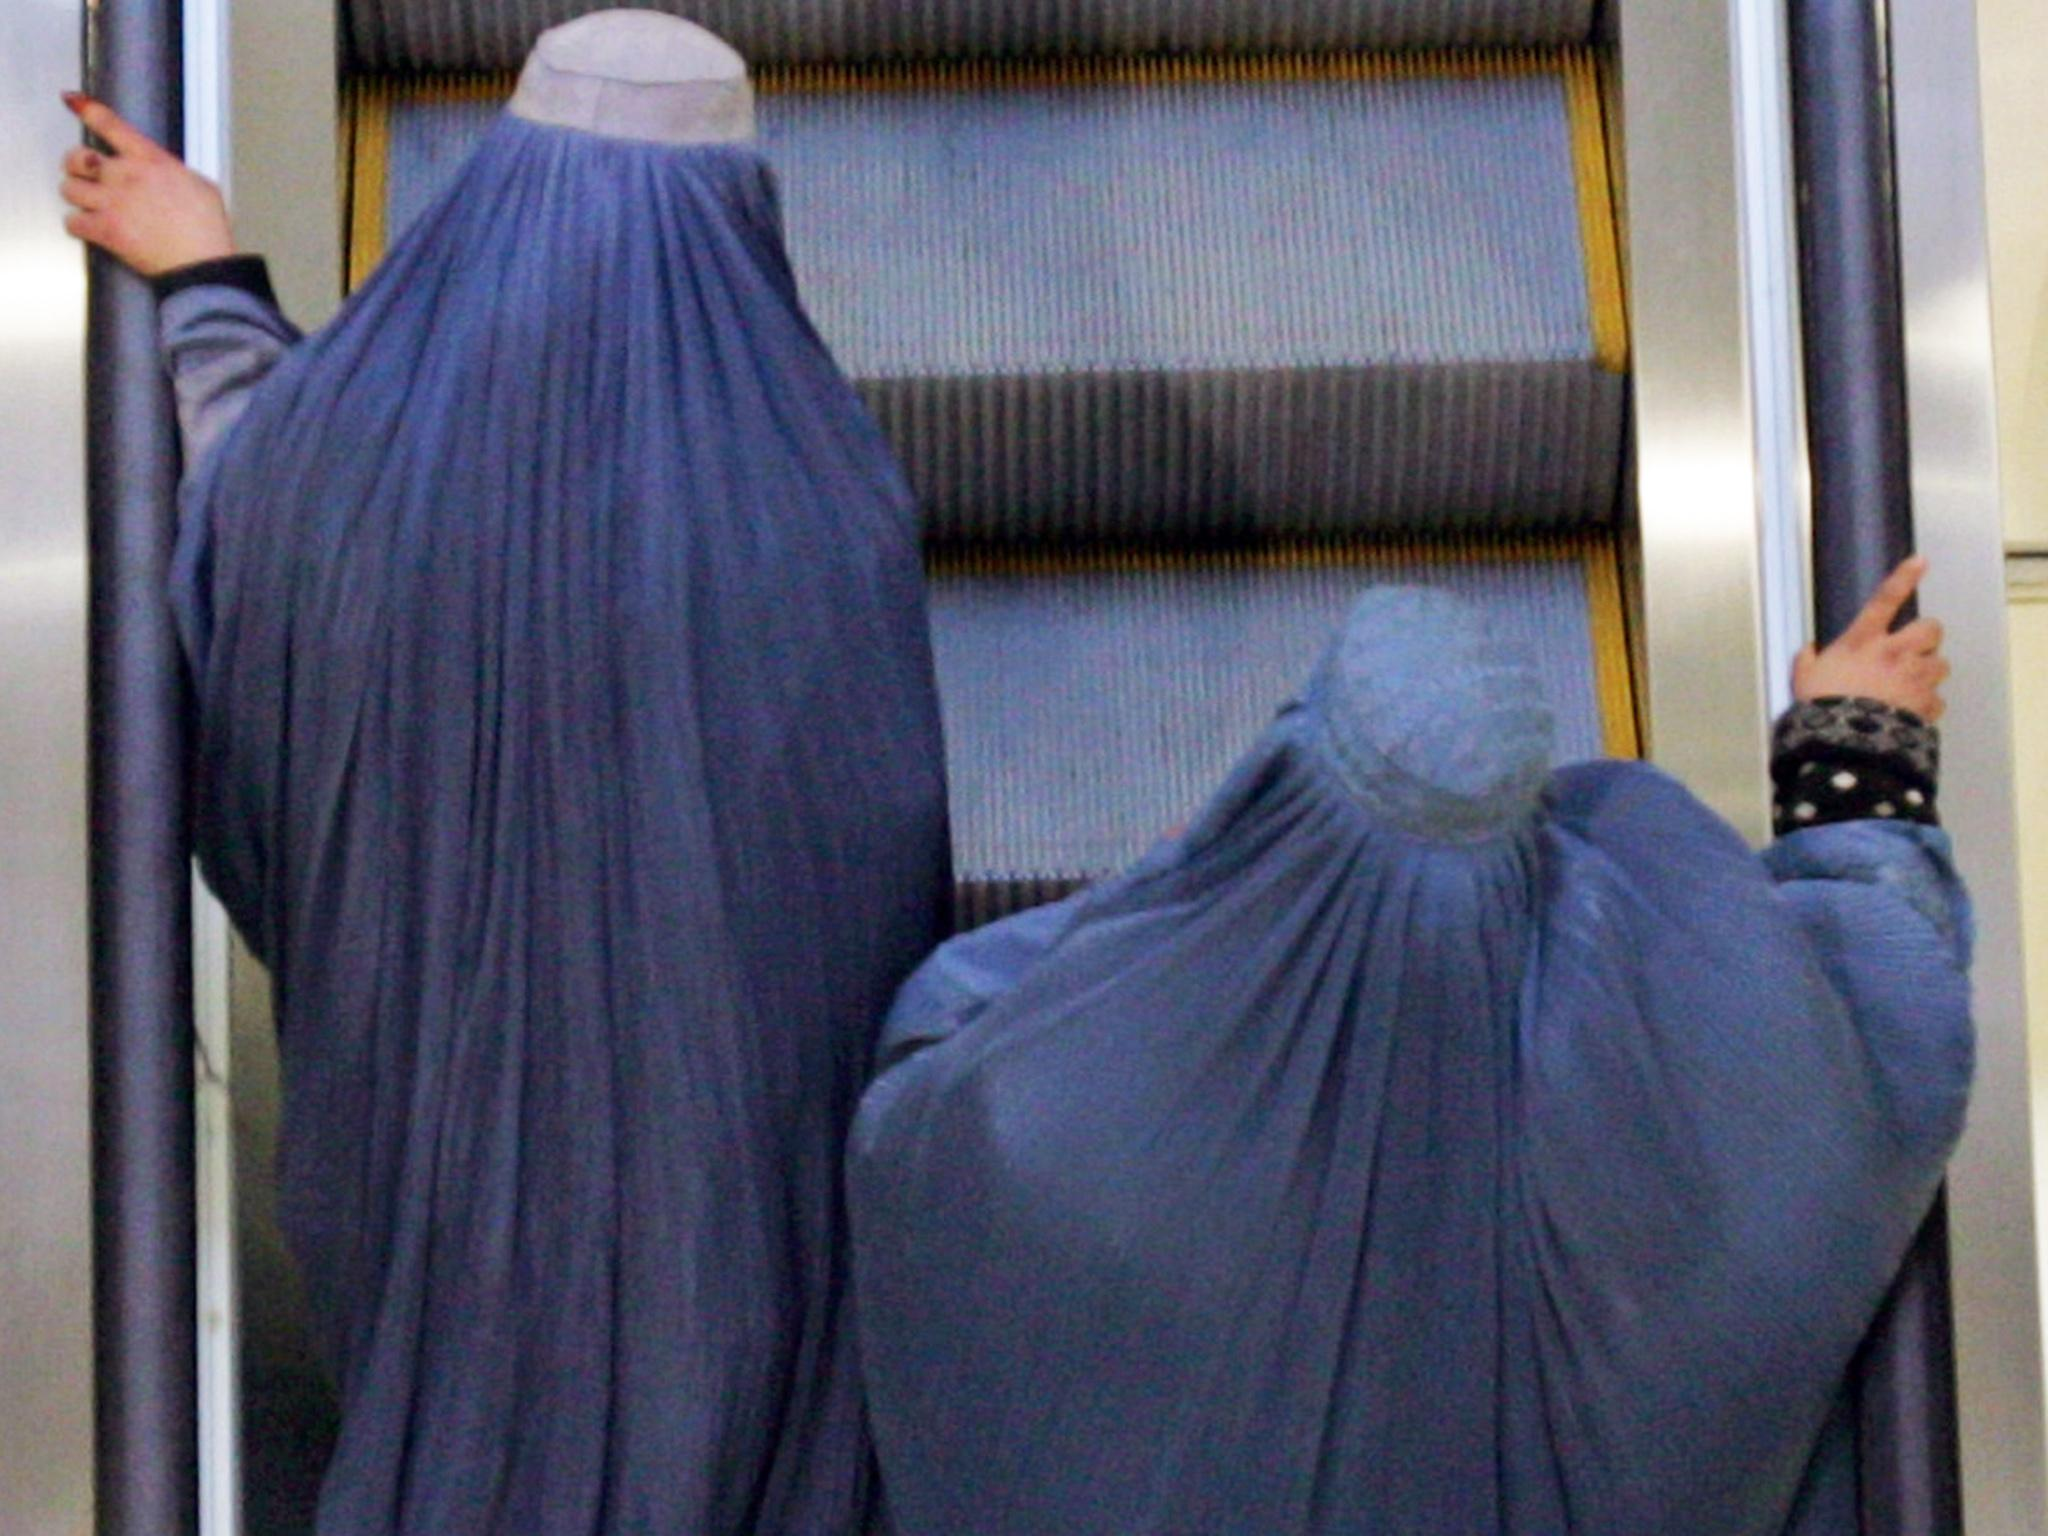 Bulgaria imposes burqa ban – and will cut benefits of women who defy it